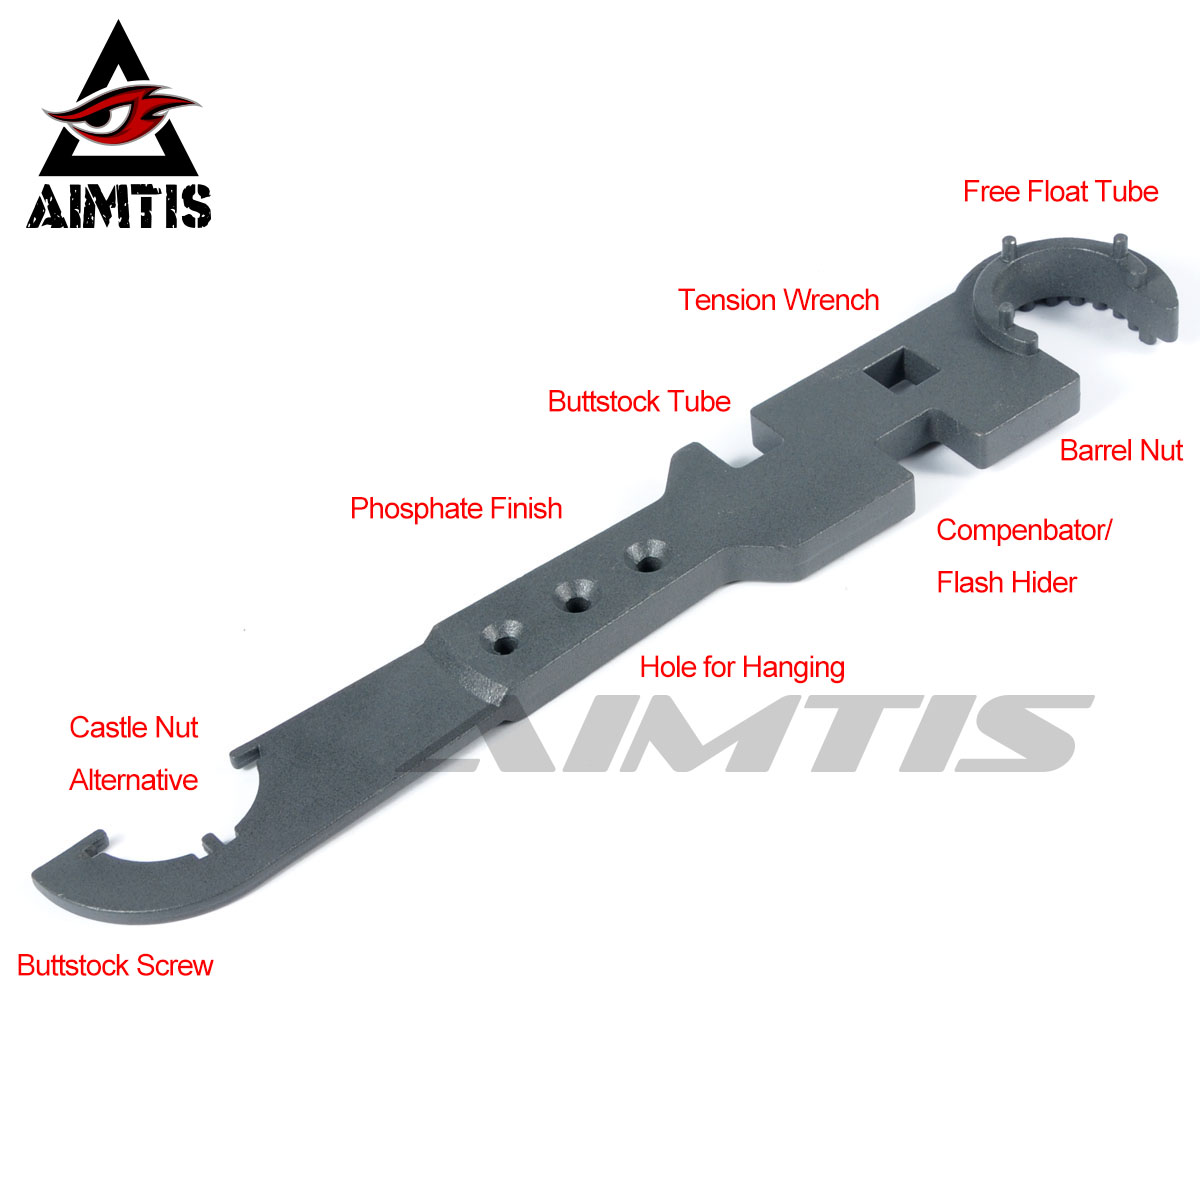 AIMTIS <font><b>AR15</b></font> Combo Wrench Tool includes Castle Nut Wrench Barrel Nut Wrench Buttstock <font><b>Tube</b></font> Tool Muzzle Brake Flash Hider Handguar image